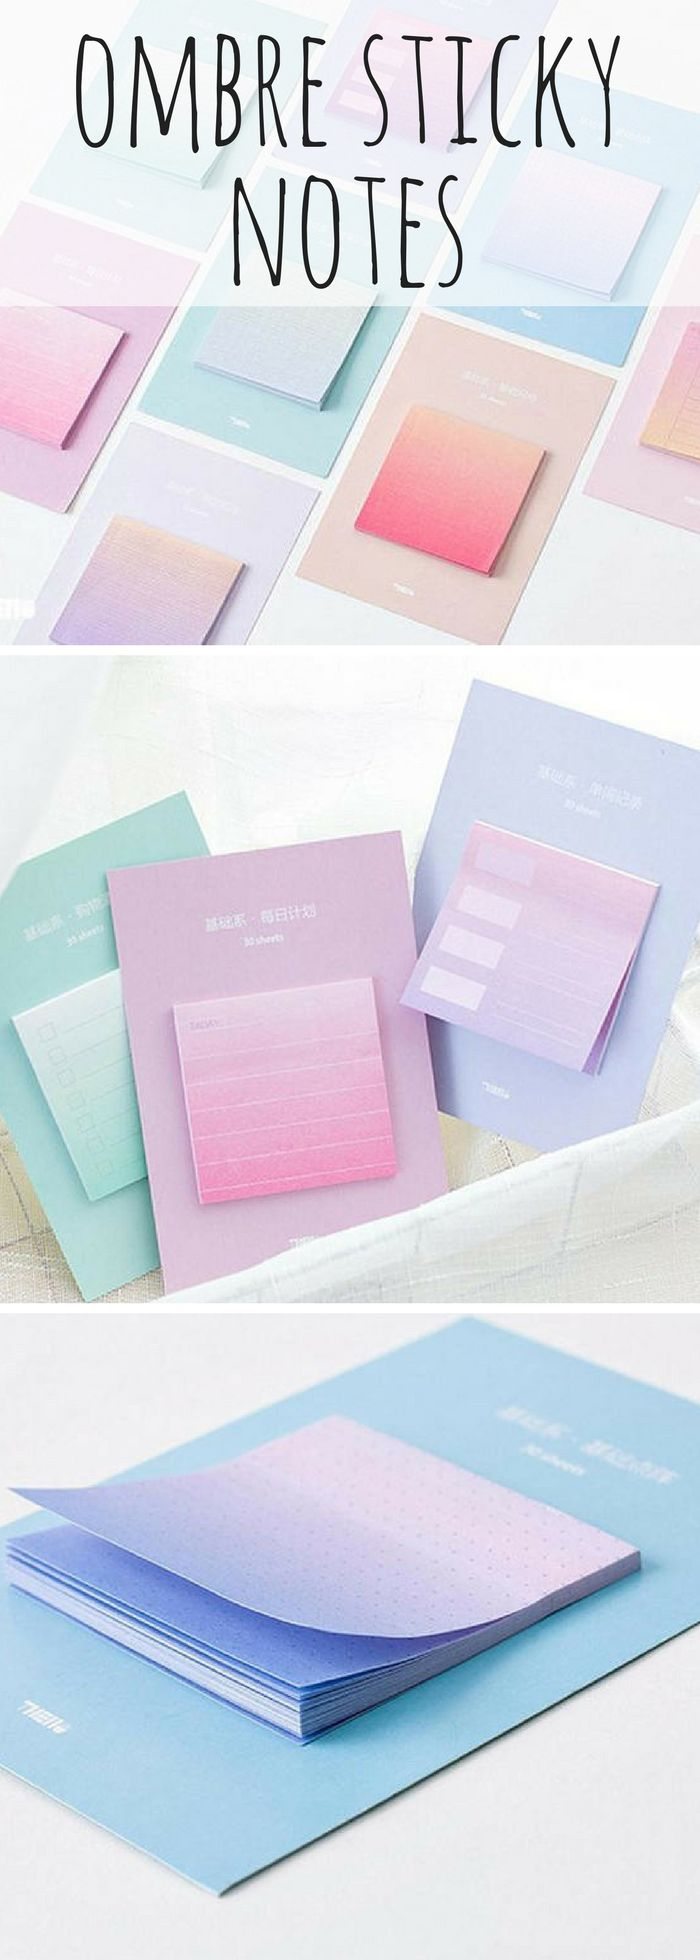 the BEST sticky notes! Some of them have to do lists printed and some have dots grids. Really perfect for slotting into your bullet journal or planner! #ad #stationery #bulletjournal #planner